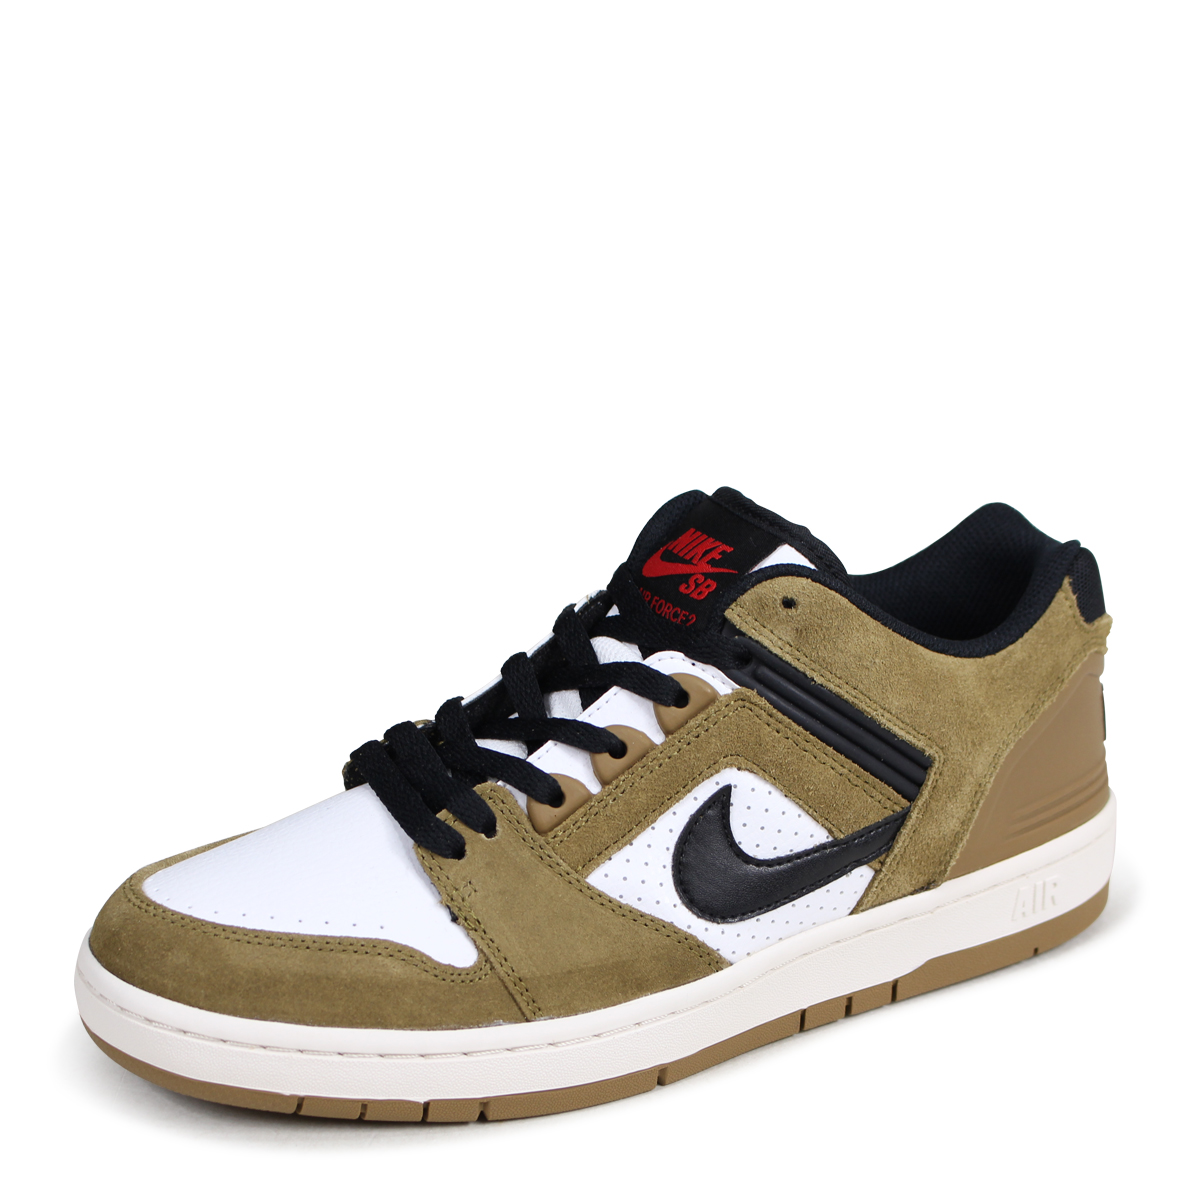 NIKE SB AIR FORCE 2 LOW ESCAPE Nike air force 2 sneakers men 917,753 700 brown [load planned Shinnyu load in reservation product 61 containing] [185]